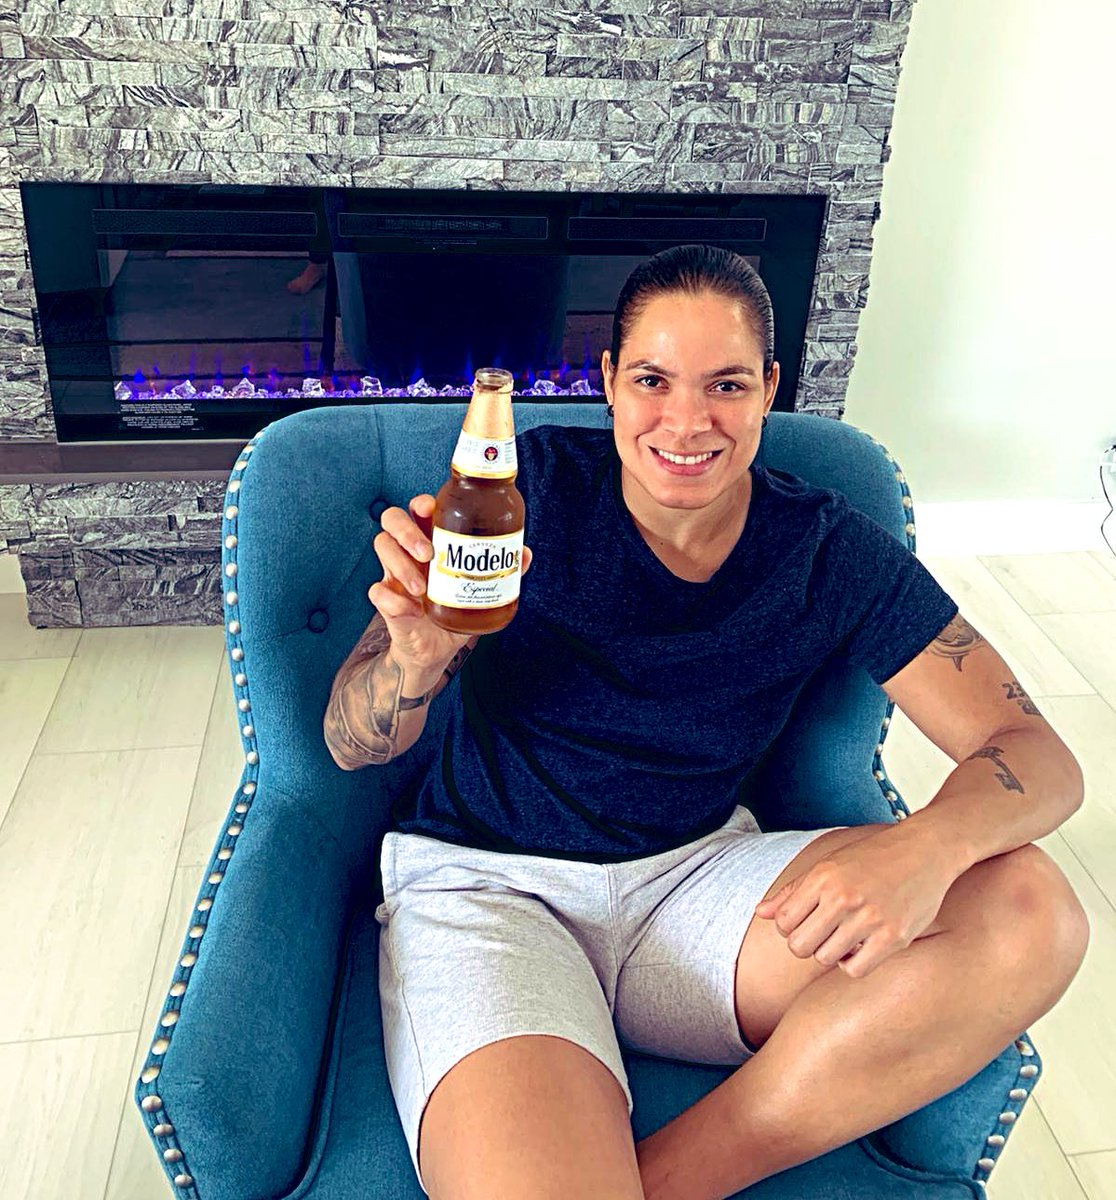 So excited @ModeloUSA is building a wave of 🥰 🥰 🥰 and 👏👏👏 for all first responders on Cinco de Mayo! Do this!! Share a 📸 or say thank you with #CincUp. For every public post using #CincUp, Modelo will donate $1 (up to $500K) to #FirstRespondersFirst!!!!! #ad https://t.co/3q3DhXqnmu